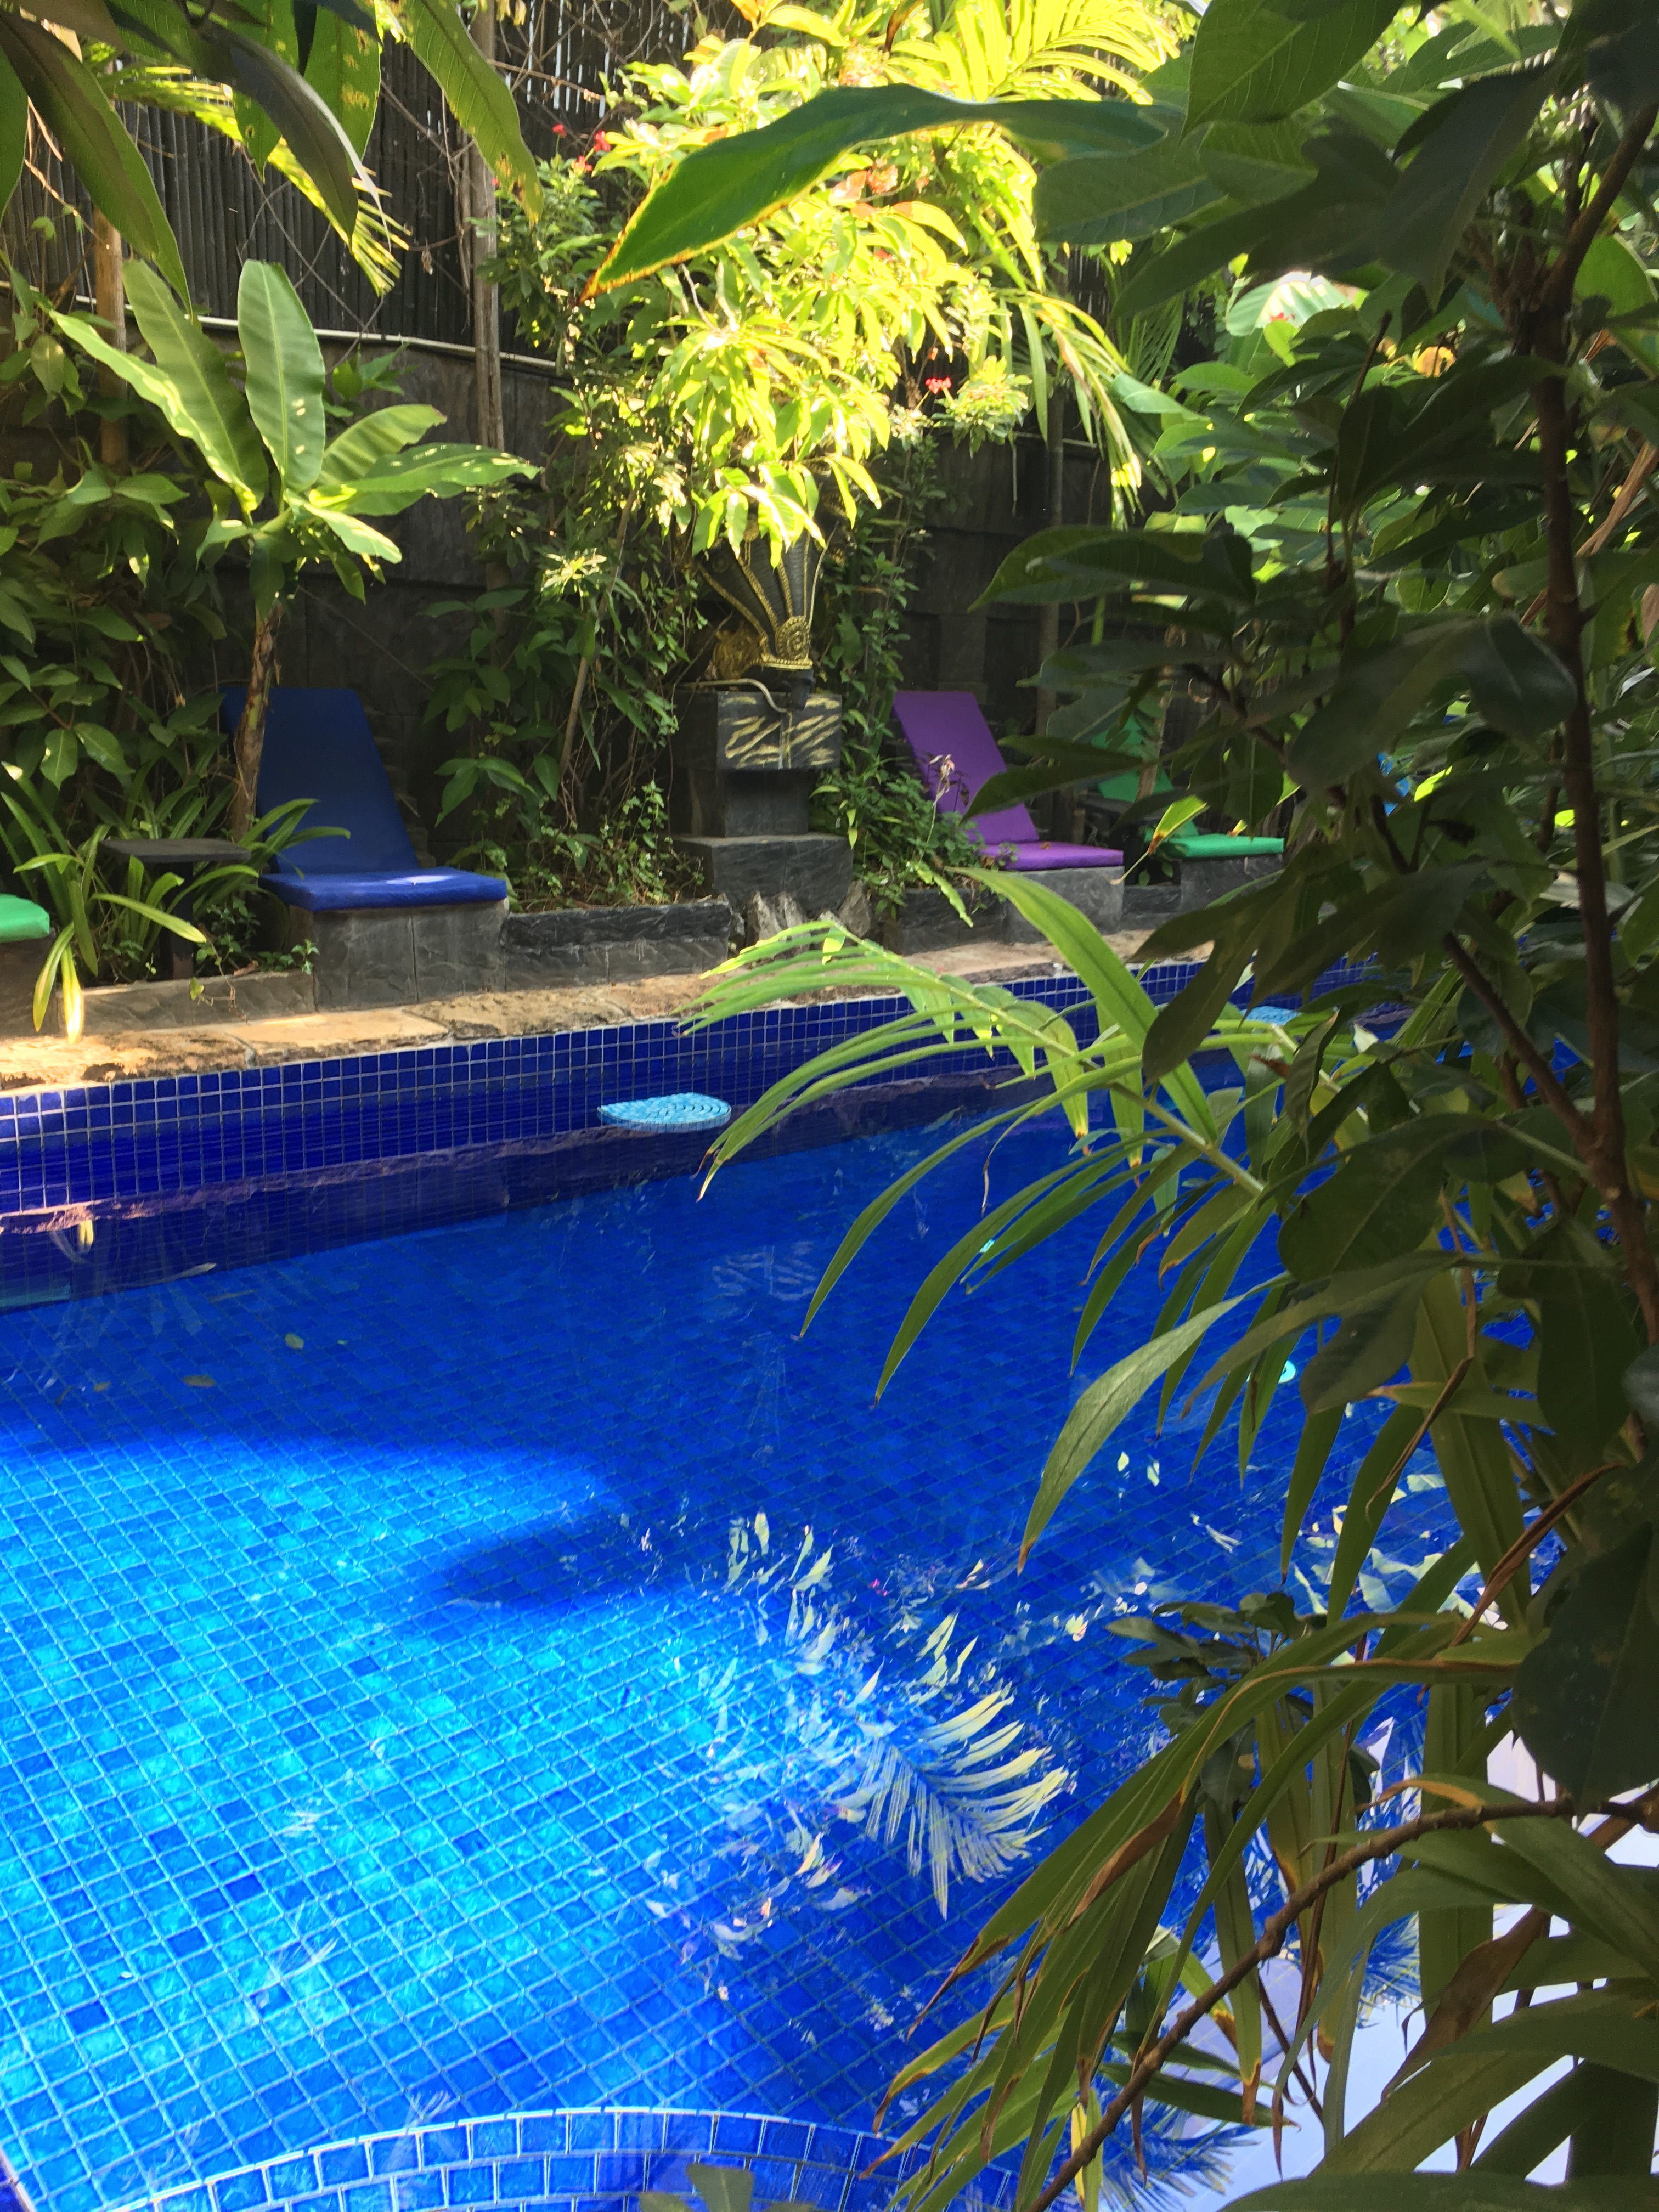 Among these 653 properties available in #siemreap we, www.petittemple.com Offered the right deal for you and feature on #booking.com 